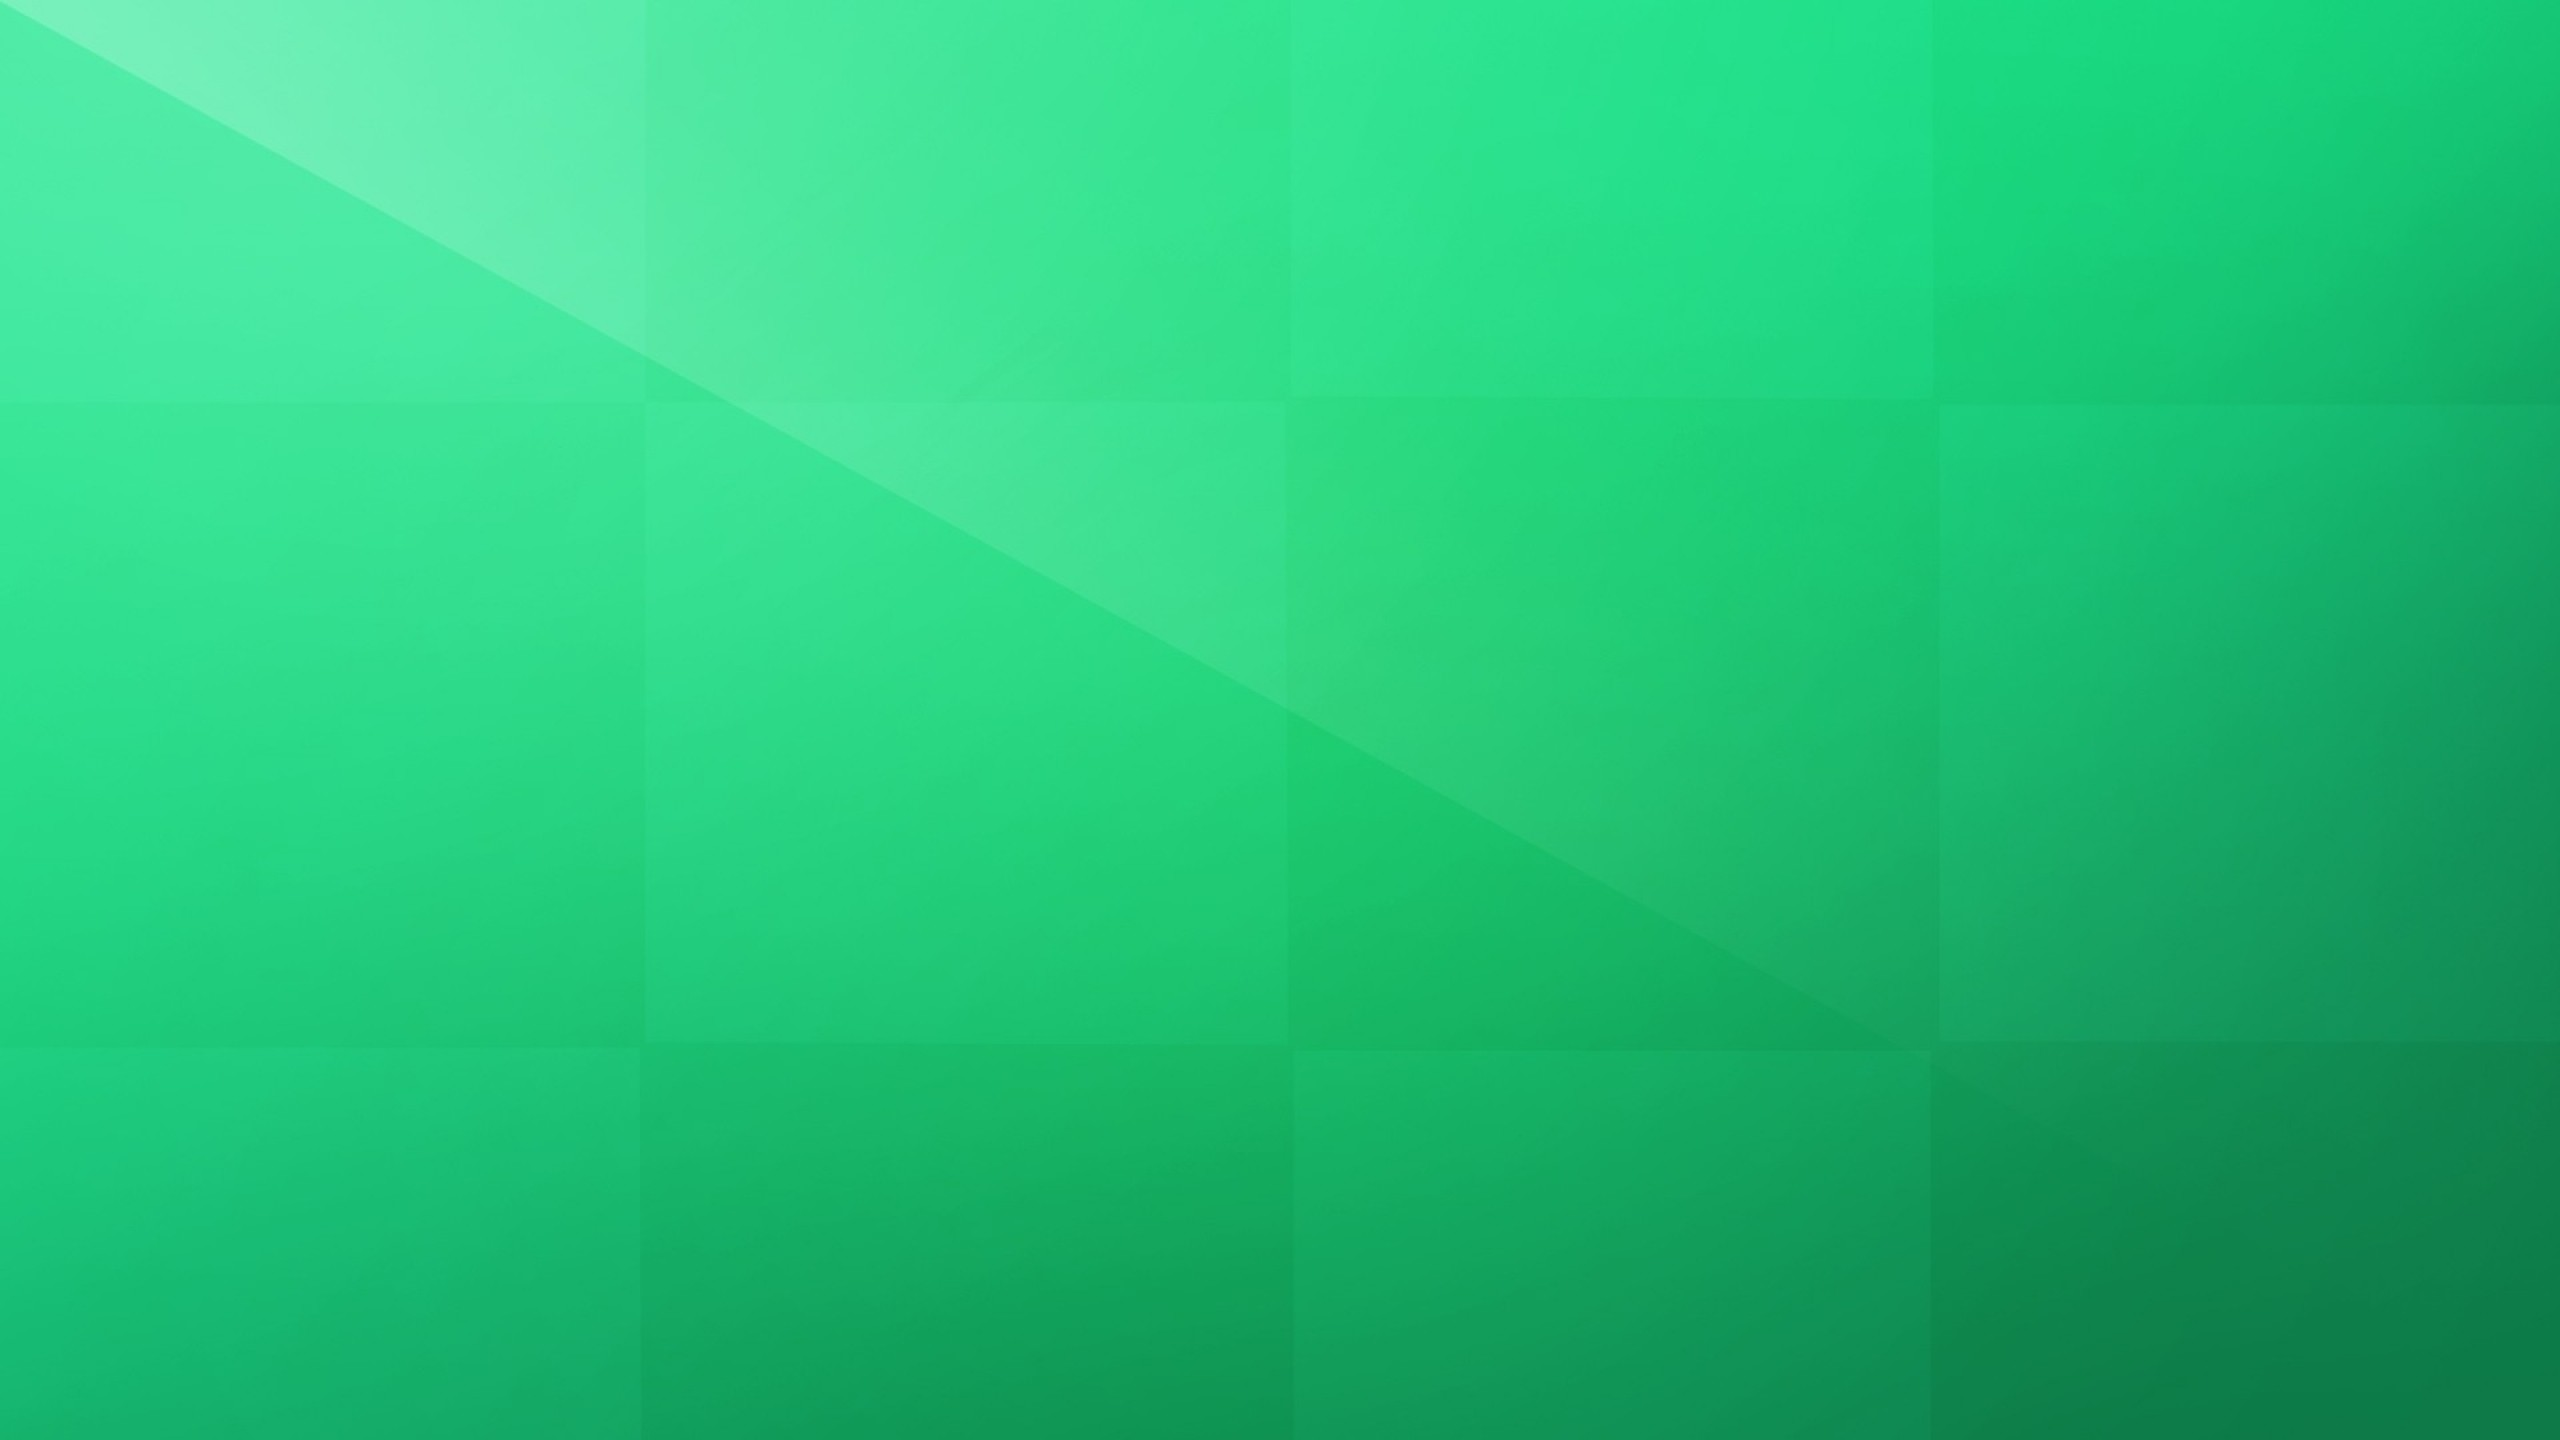 Wallpaper background, cell, solid, color, line